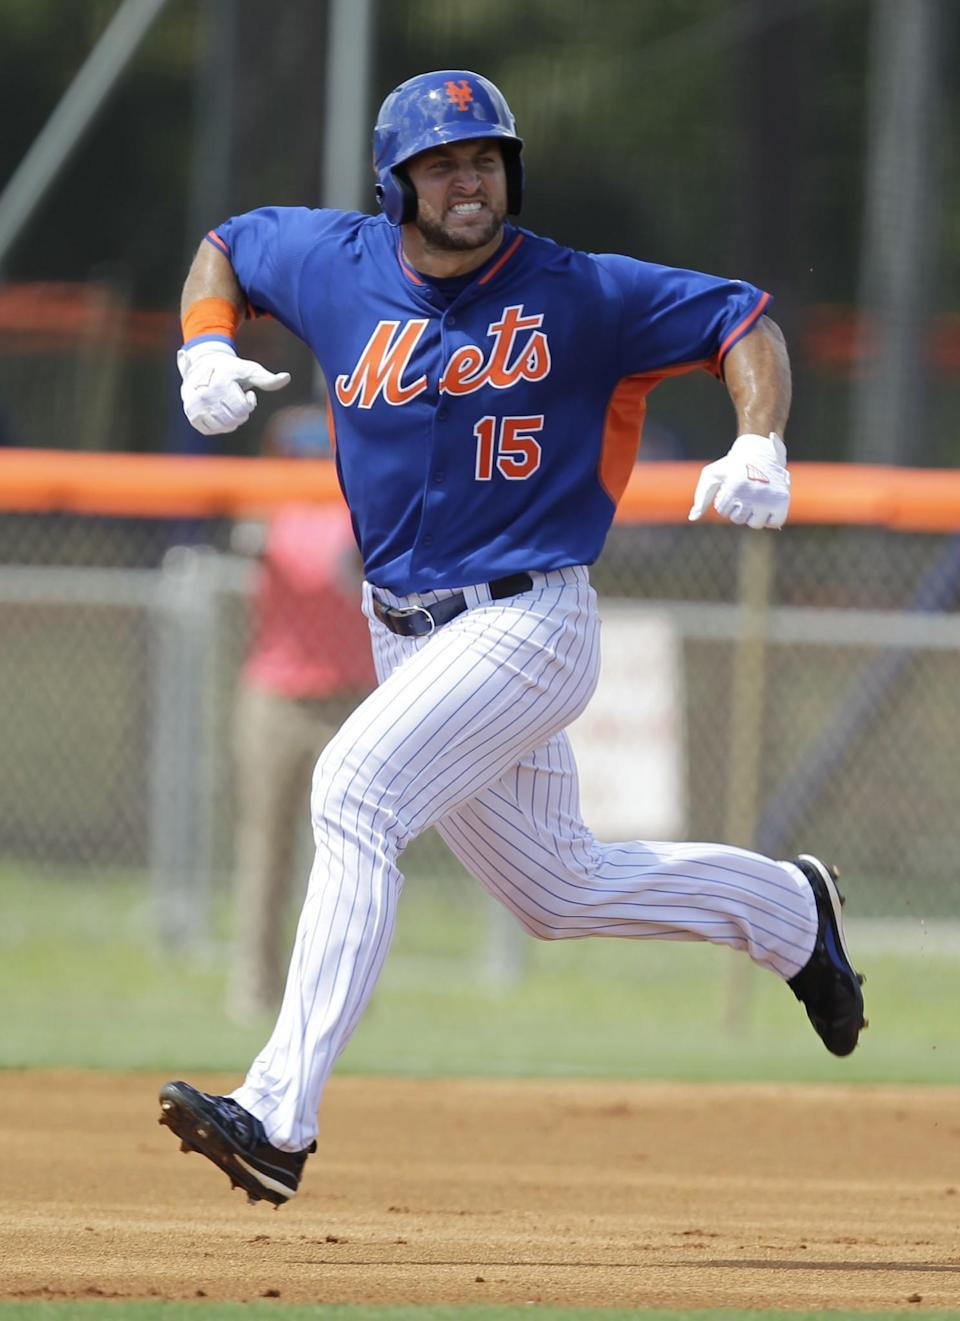 <p>Tim Tebow reacts after hitting a solo home run in his first at bat during the first inning of his first instructional league baseball game for the New York Mets against the St. Louis Cardinals instructional club Wednesday, Sept. 28, 2016, in Port St. Lucie, Fla. (AP Photo/Luis M. Alvarez) </p>